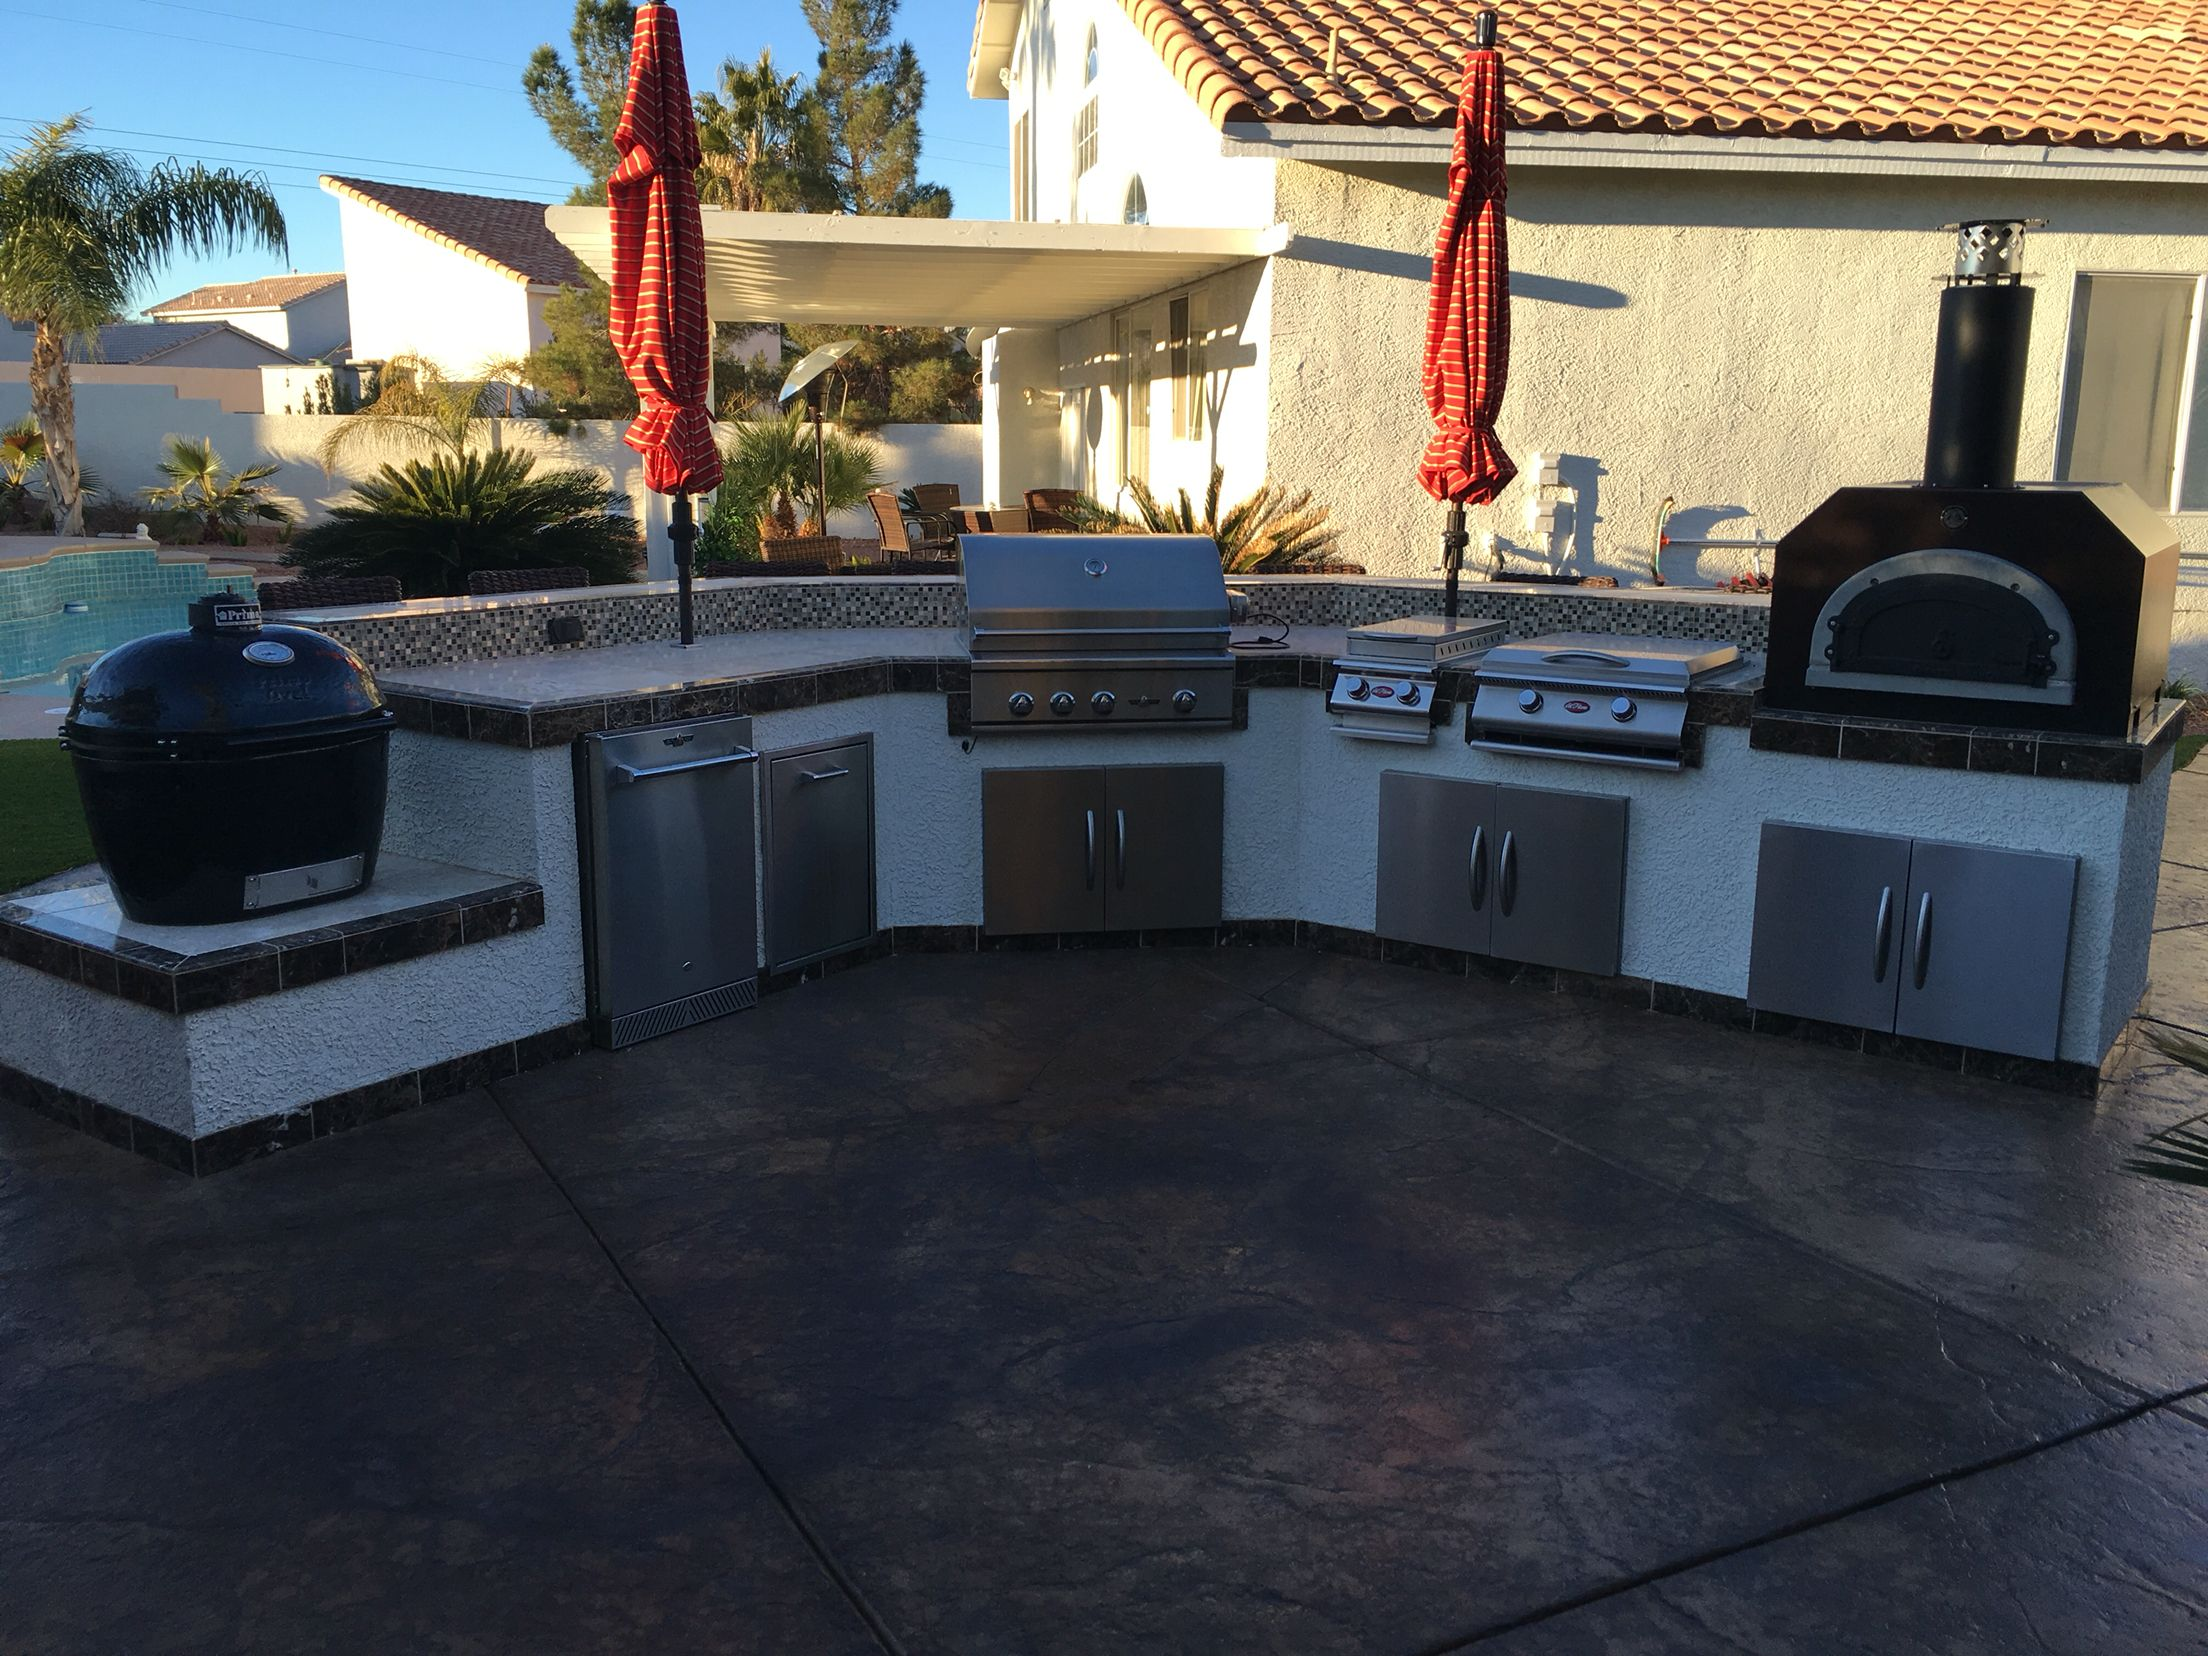 Pin By Jerrica Brown On Grill Area In 2020 Outdoor Hibachi Grill